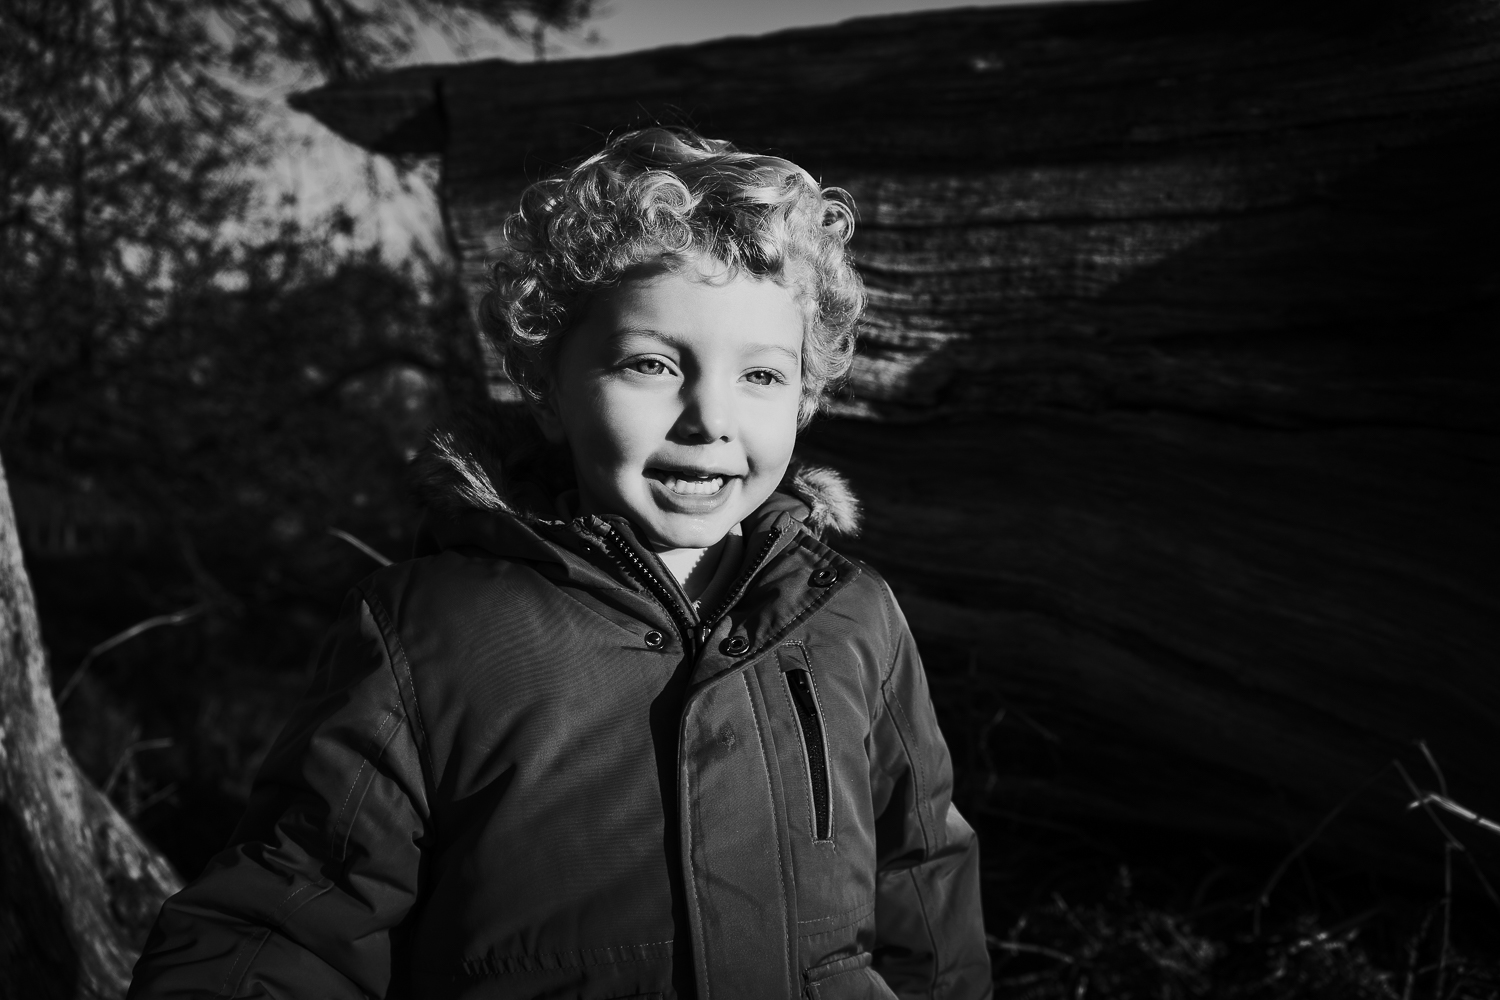 sibling family photography 2020 black and white portrait young boy